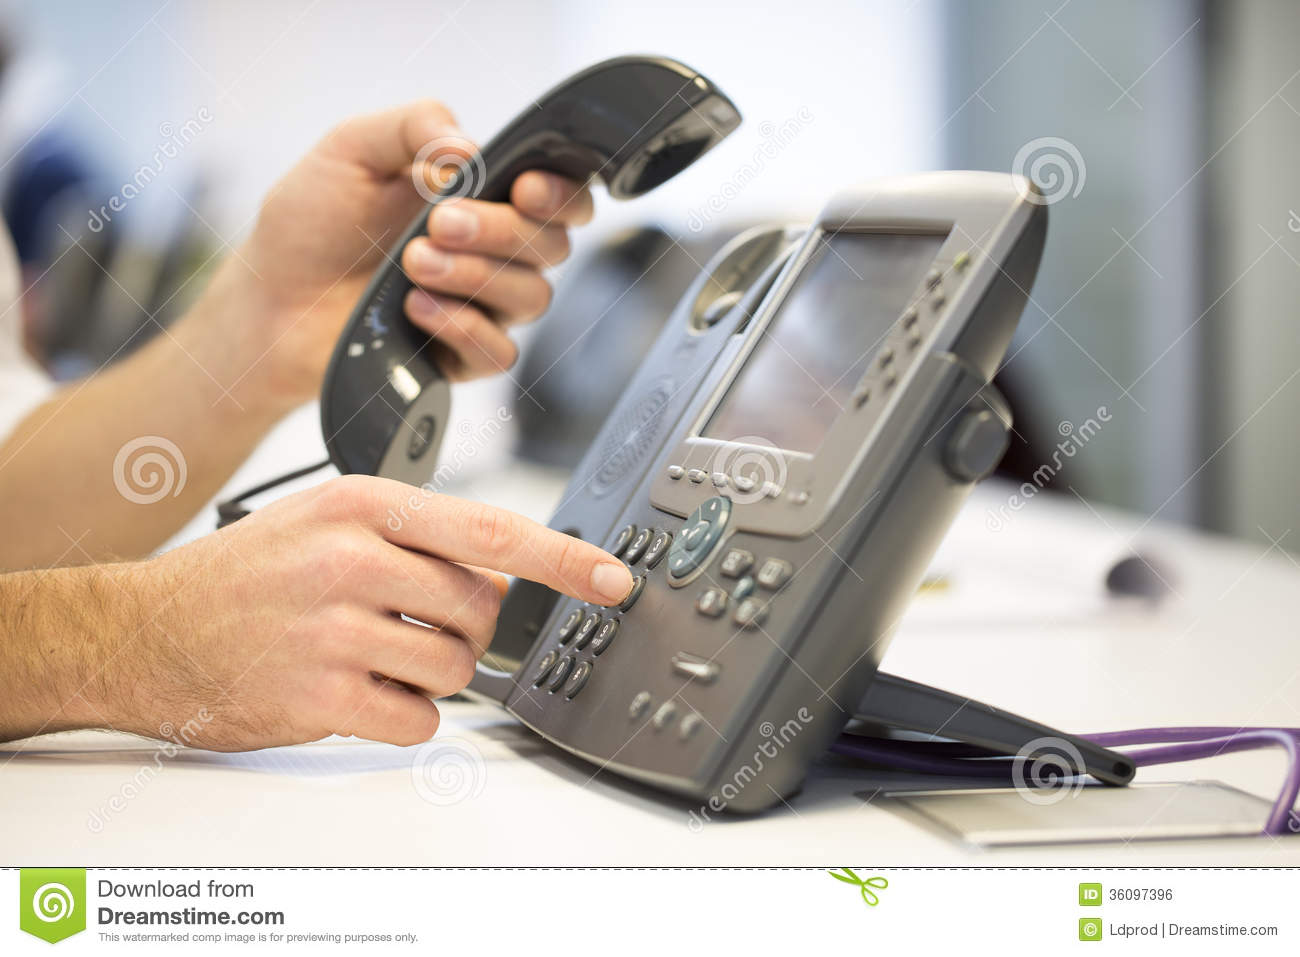 Man hand is dialing a phone number, office Background